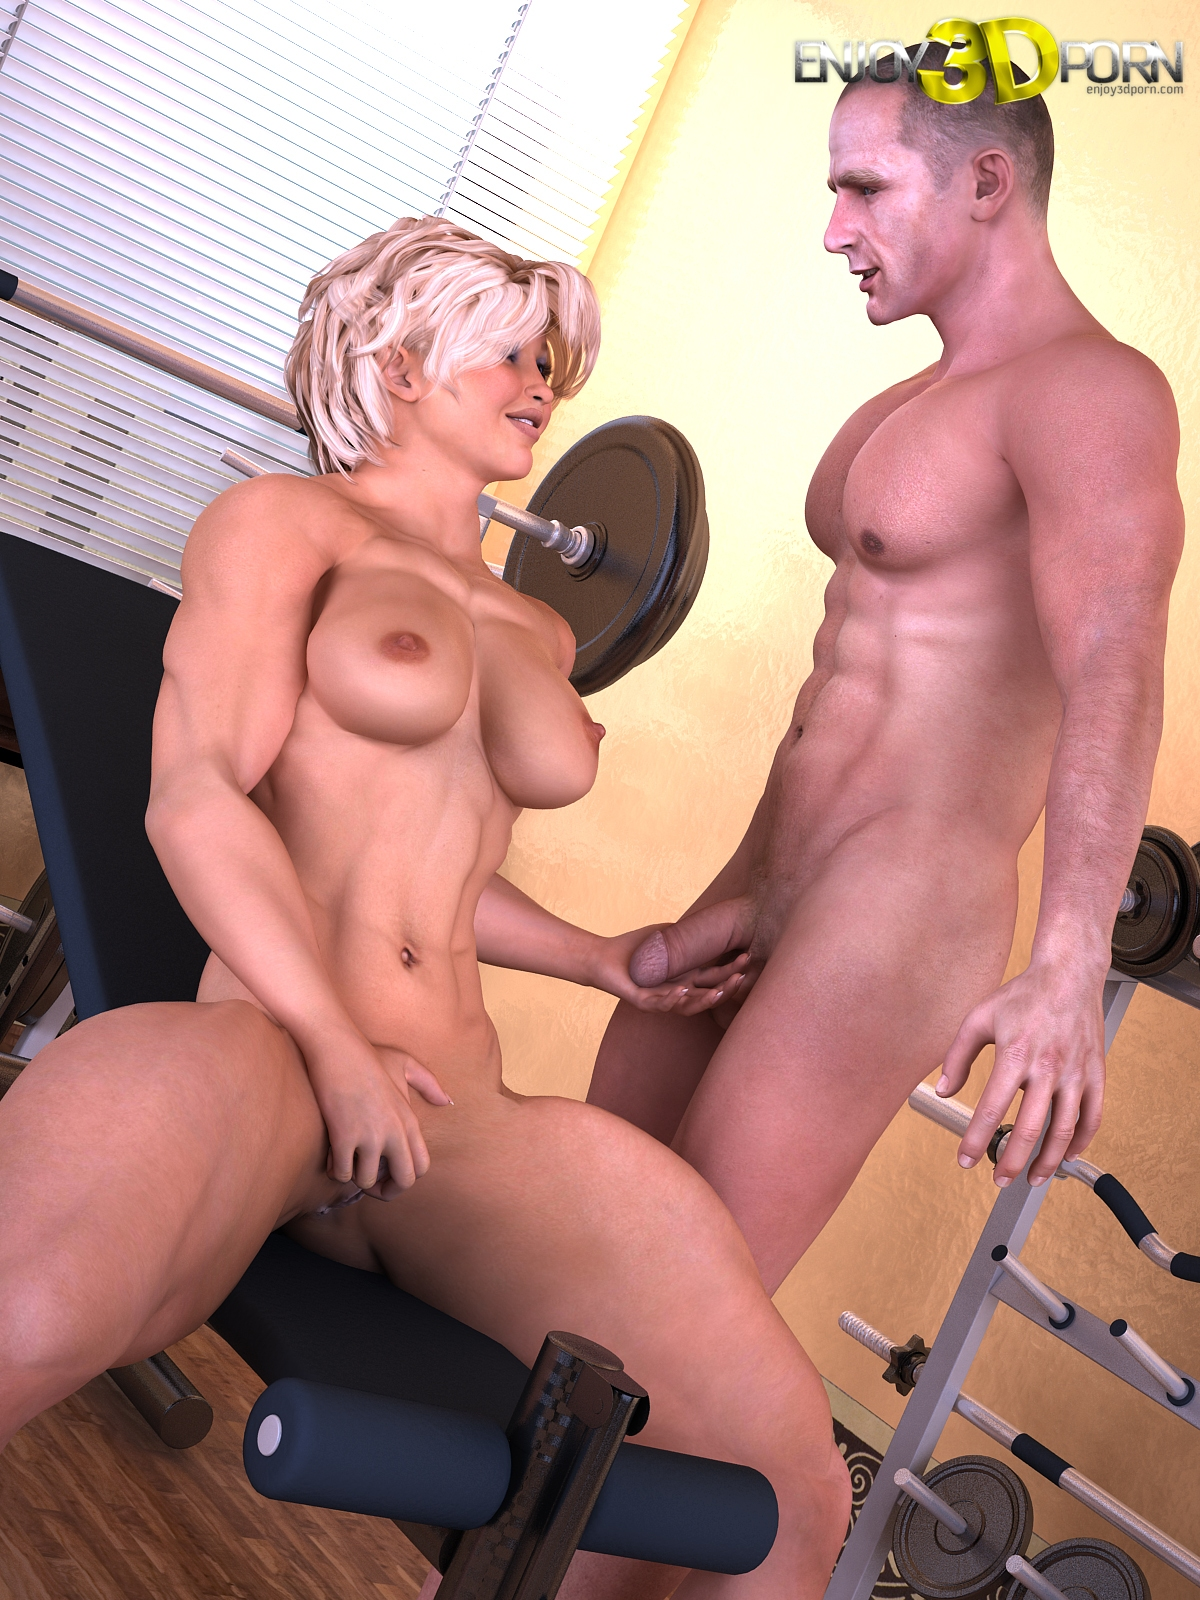 Muscle women fuck cockporn pron photos